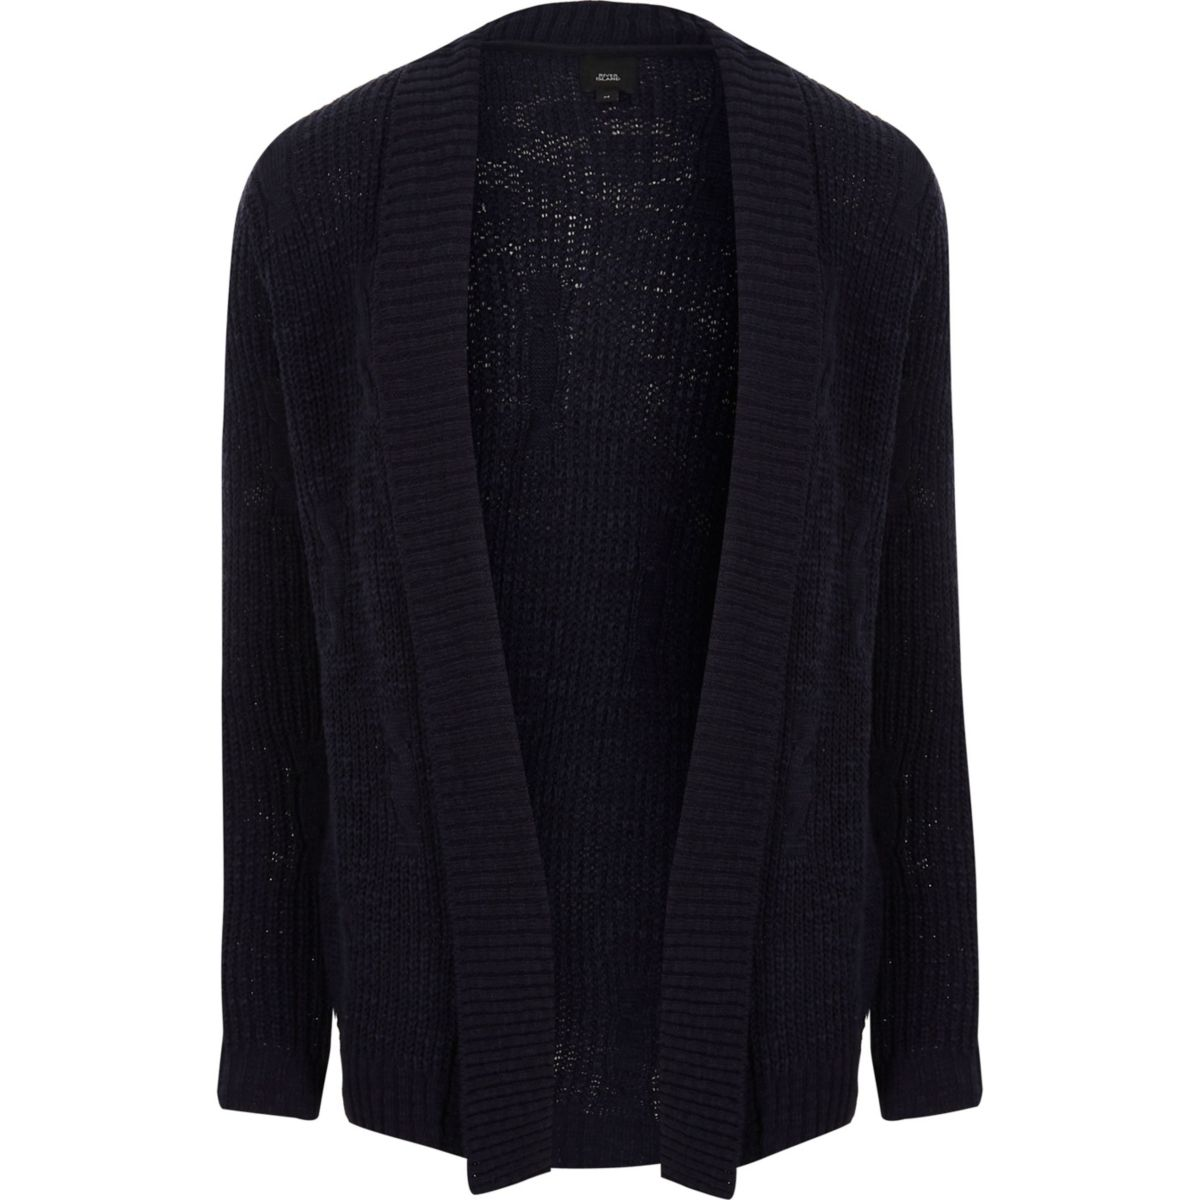 Shop slim fit knit sweater at Neiman Marcus, where you will find free shipping on the latest in fashion from top designers. Veronica Beard Moss Striped Cable-Knit Sweater Details Veronica Beard